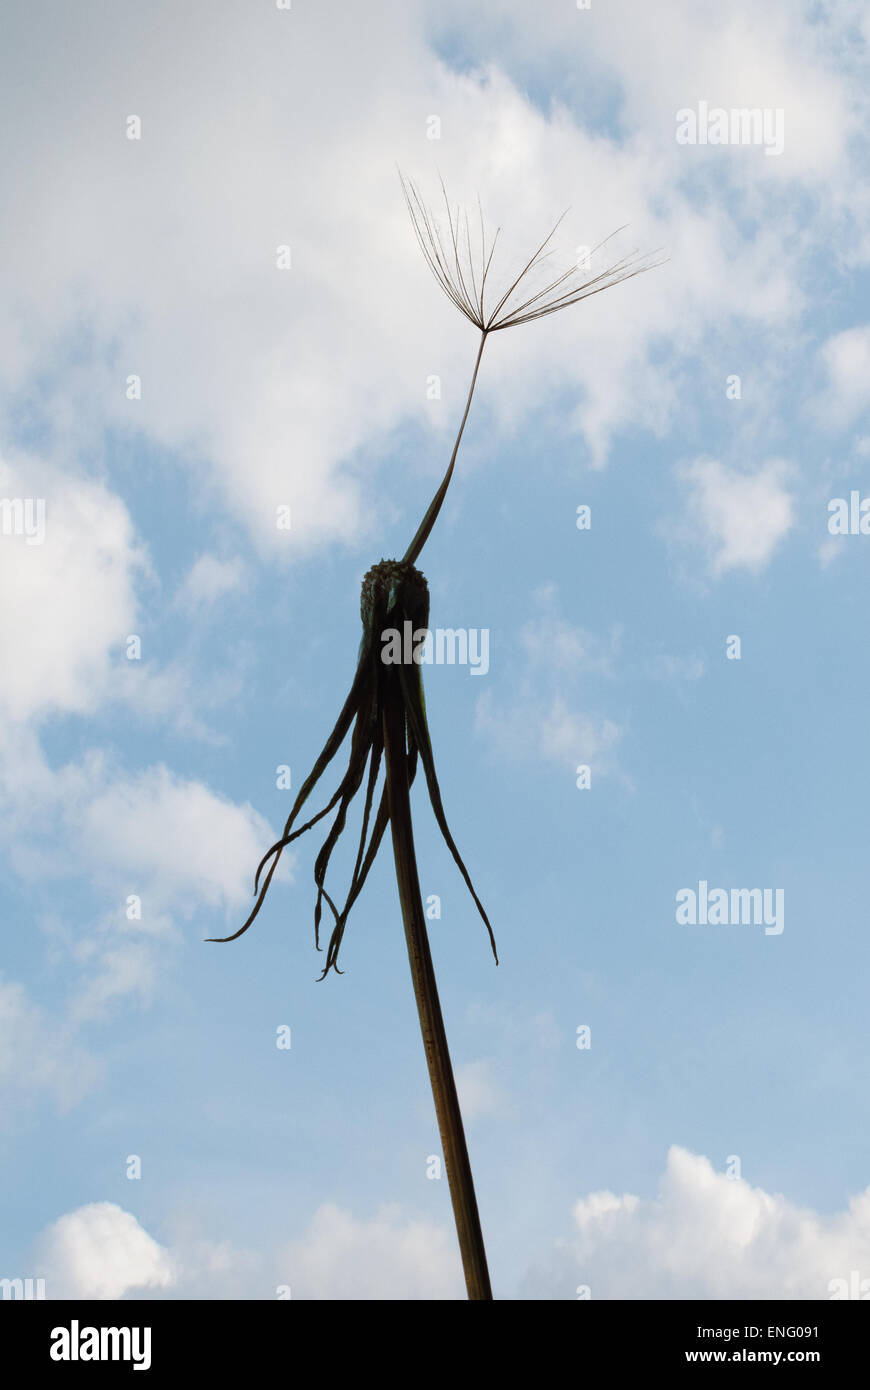 single last lonely seed head on old dandelion flower waiting to be blown off and its all over no more - Stock Image